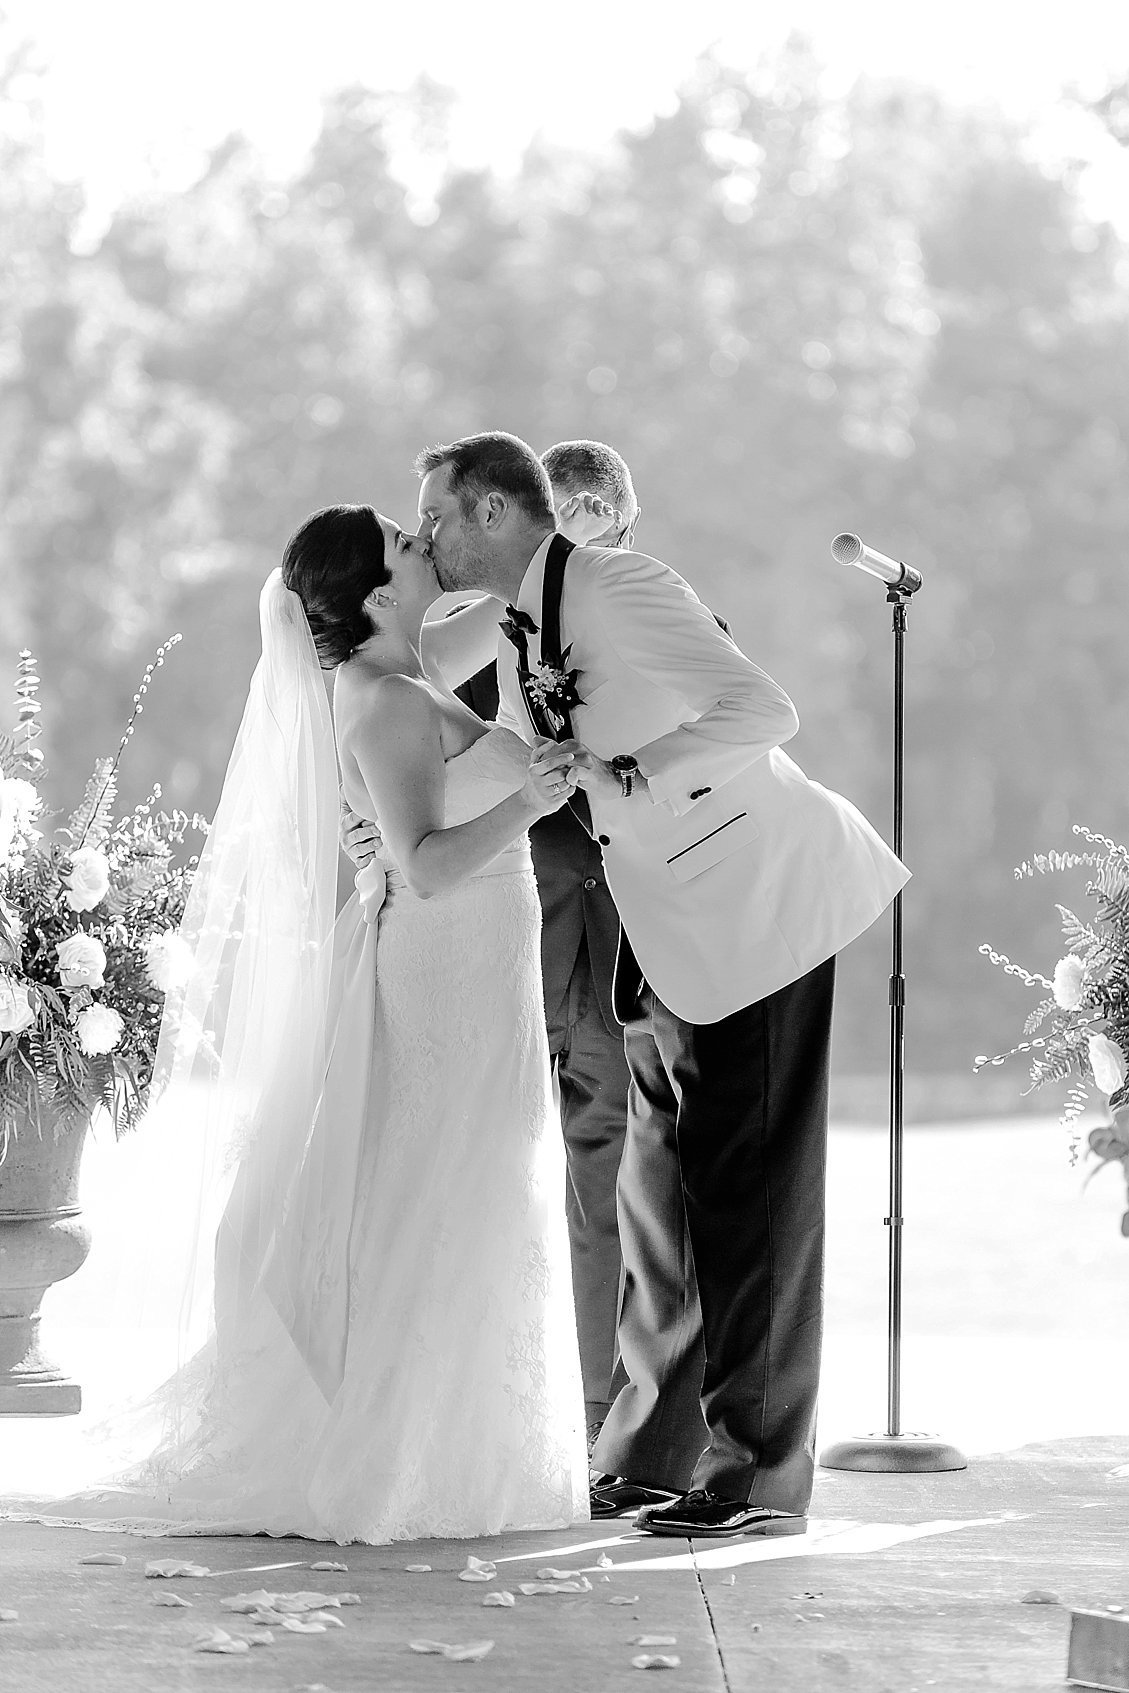 sharonelizabethphotography-independencegolfclubwedding-richmondvirginiawedding-classicgolfcoursewedding3768